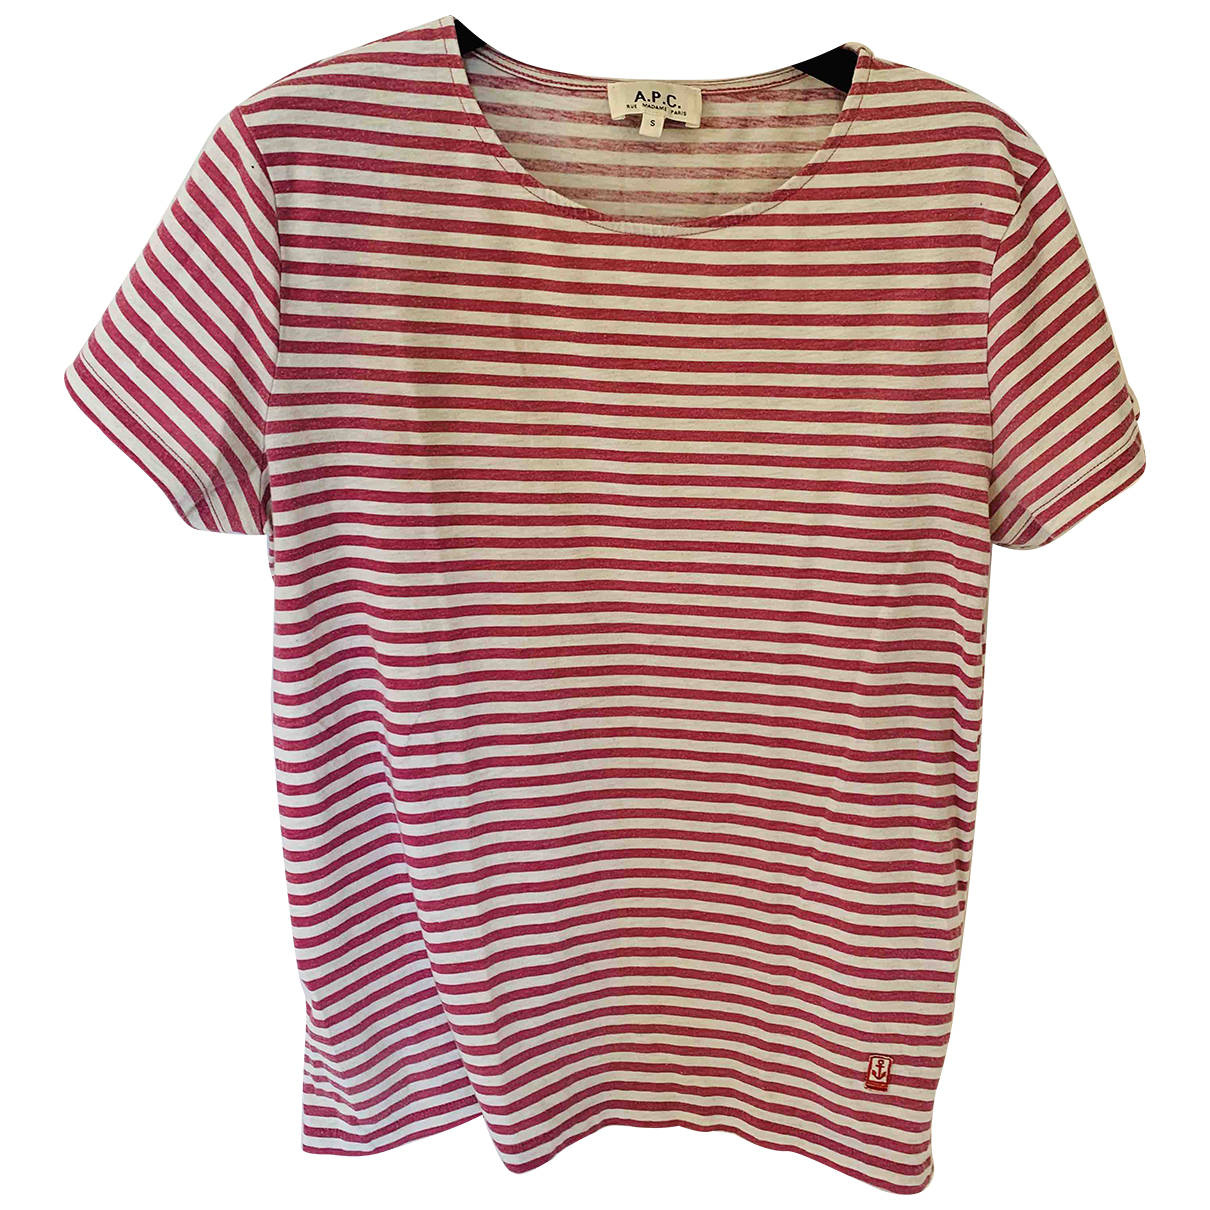 Apc N Pink Cotton T-shirts for Men S International